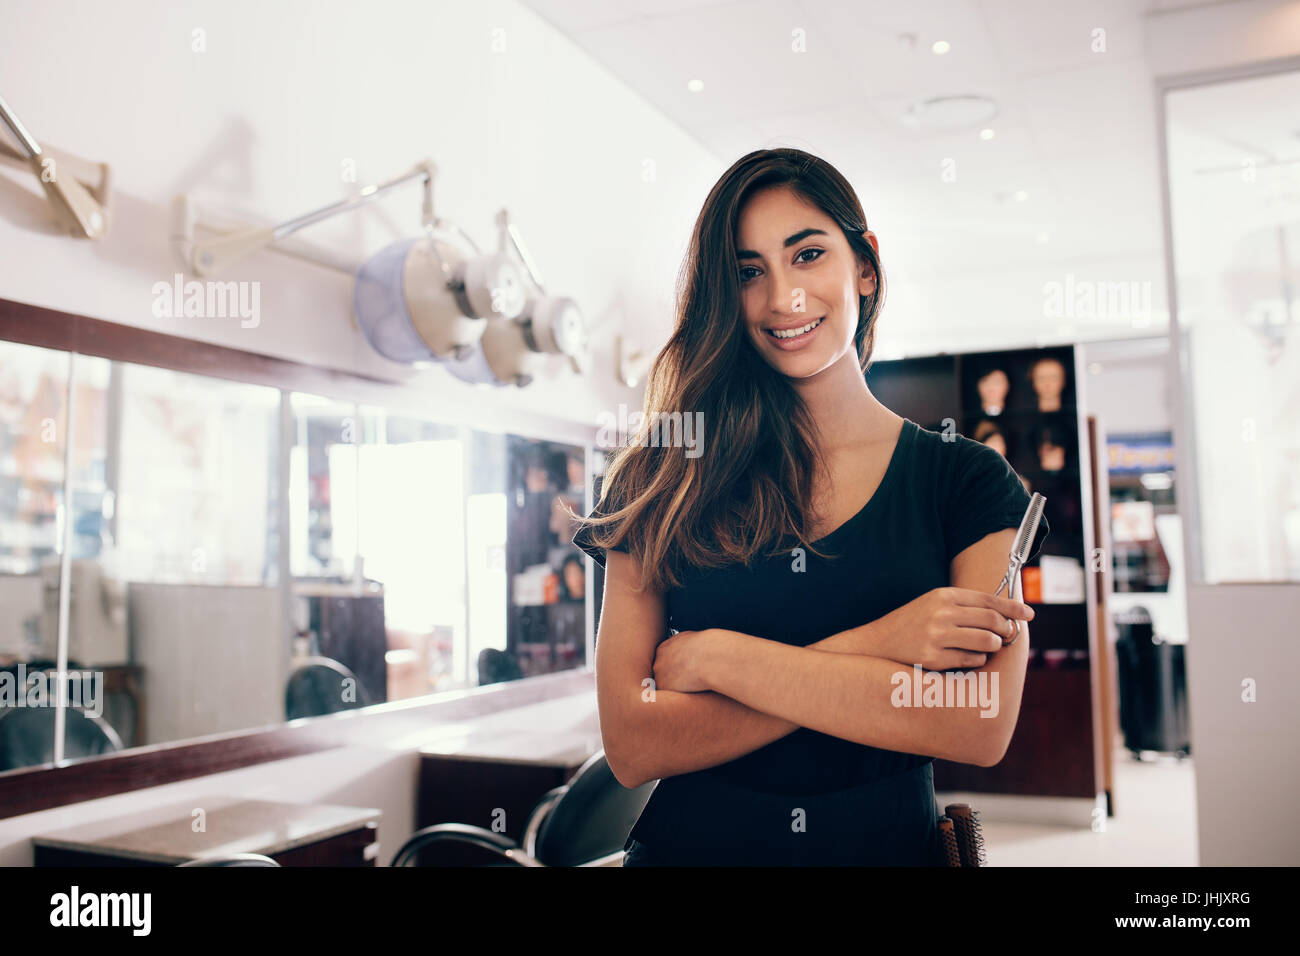 Professional woman hairdresser in salon with scissors in hand. Smiling young woman standing in salon with folded - Stock Image